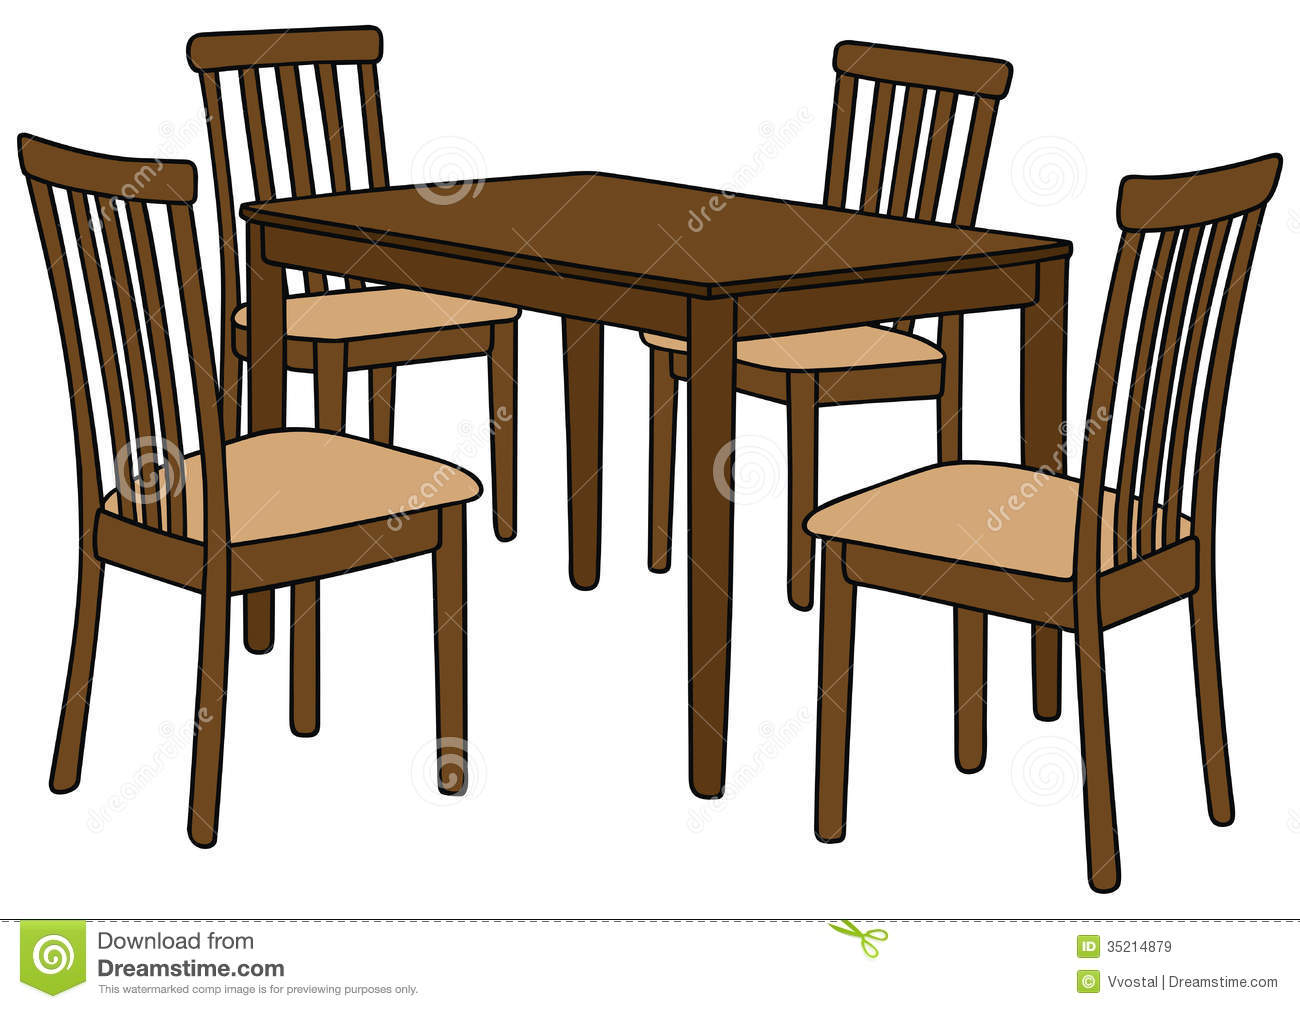 Table and chair cover clipart.